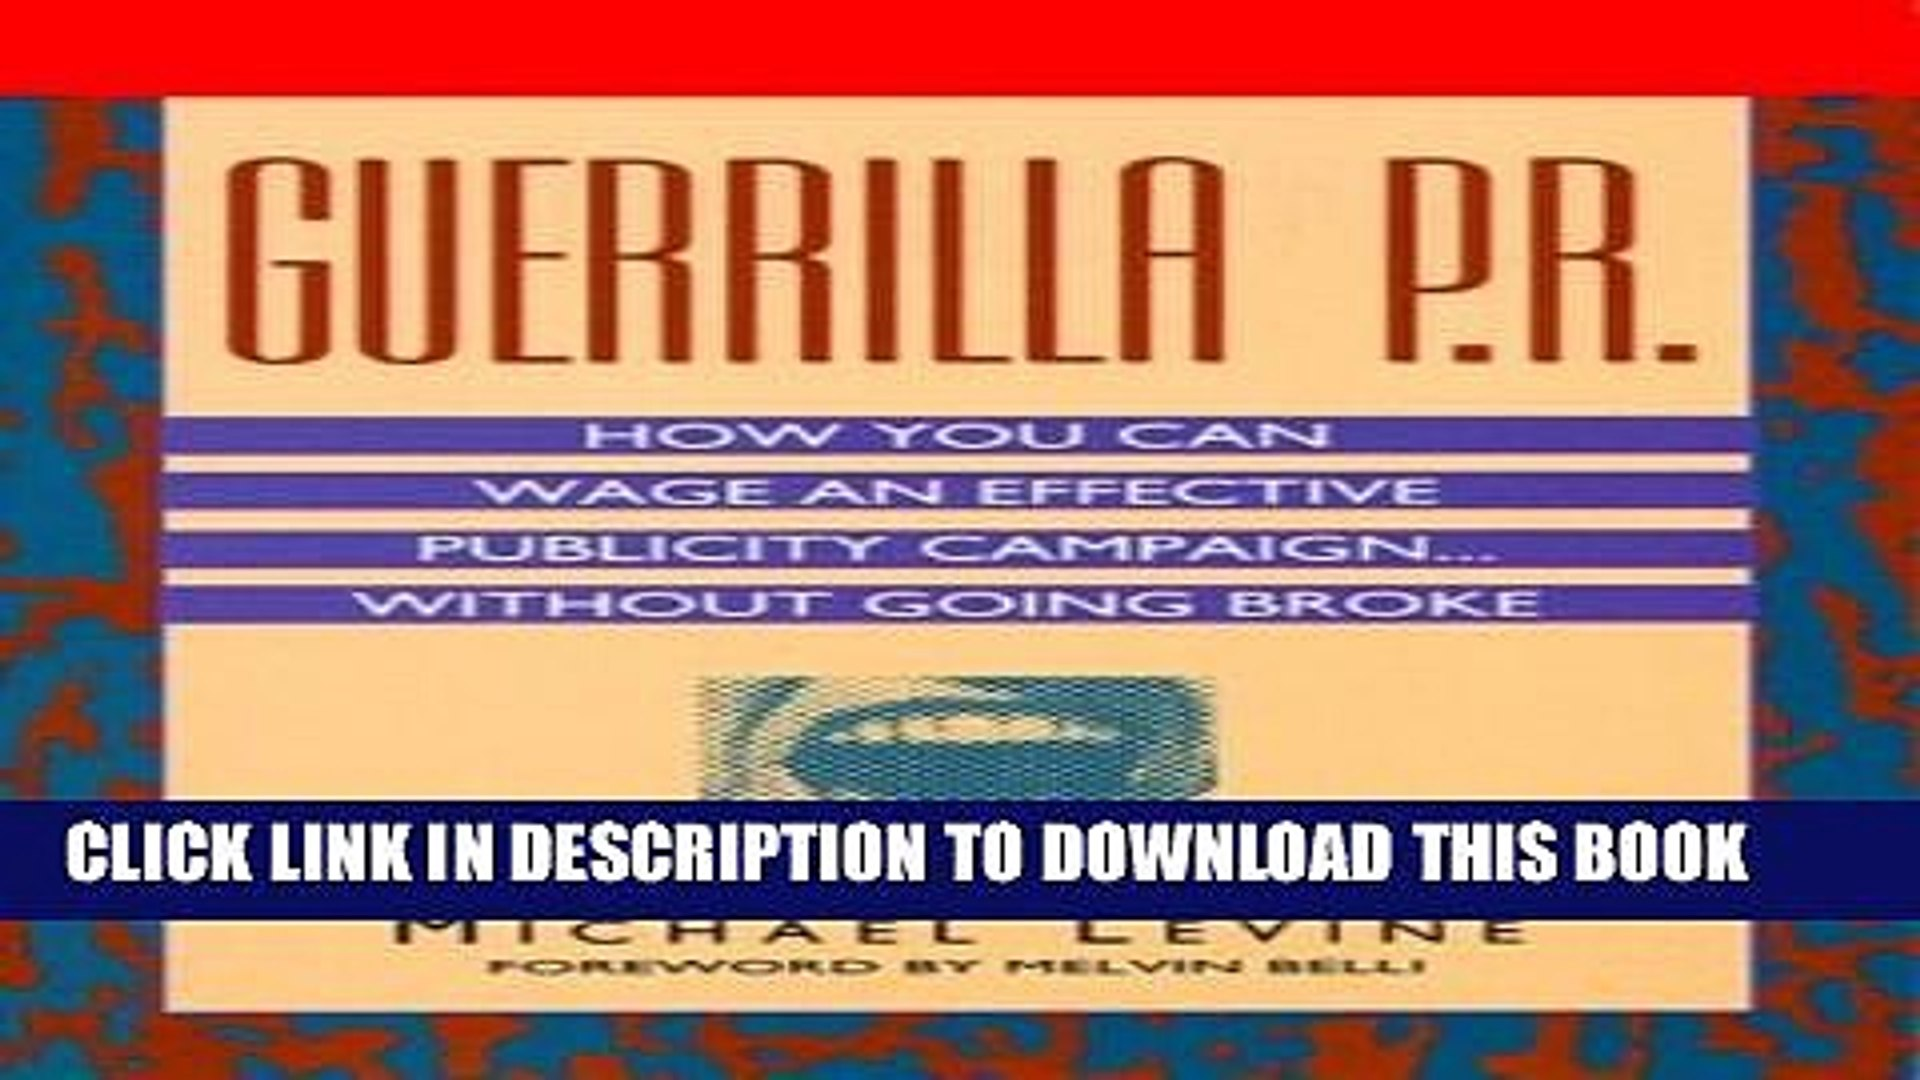 New Book Guerrilla P.R.: How You Can Wage an Effective Publicity Campaign...Without Going Broke